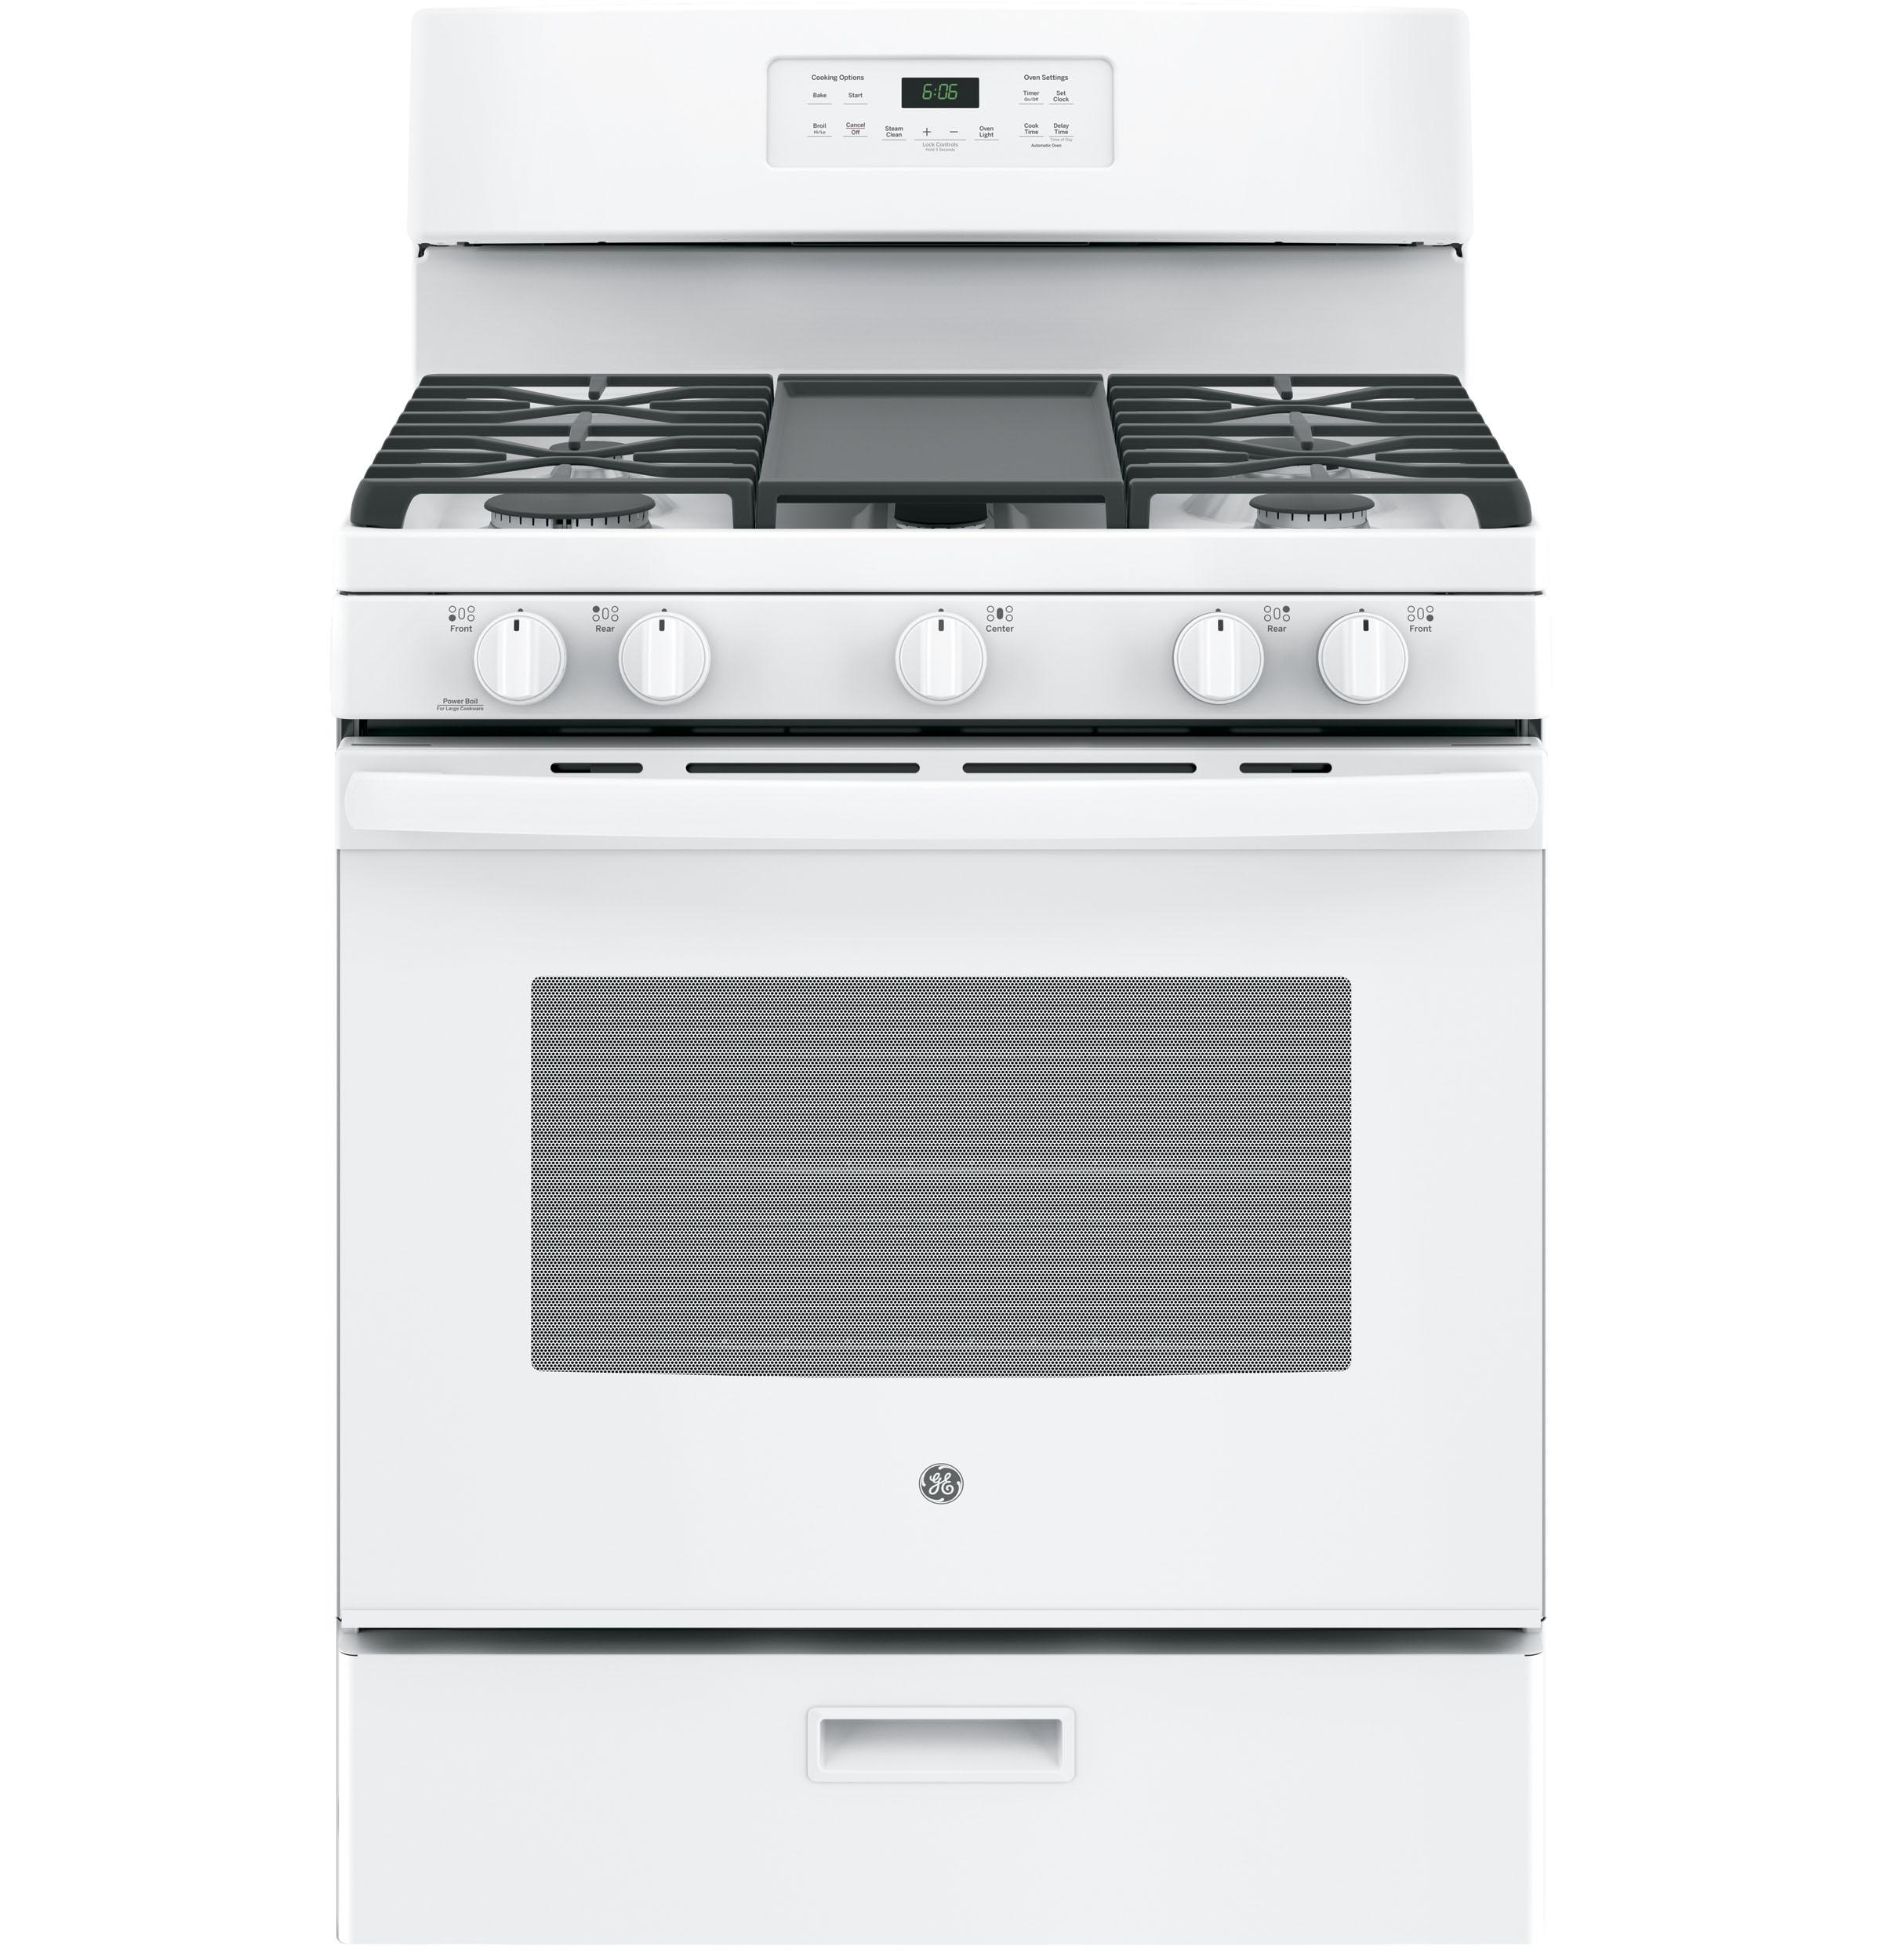 The best black Friday appliance deals 2019: GE freestanding range